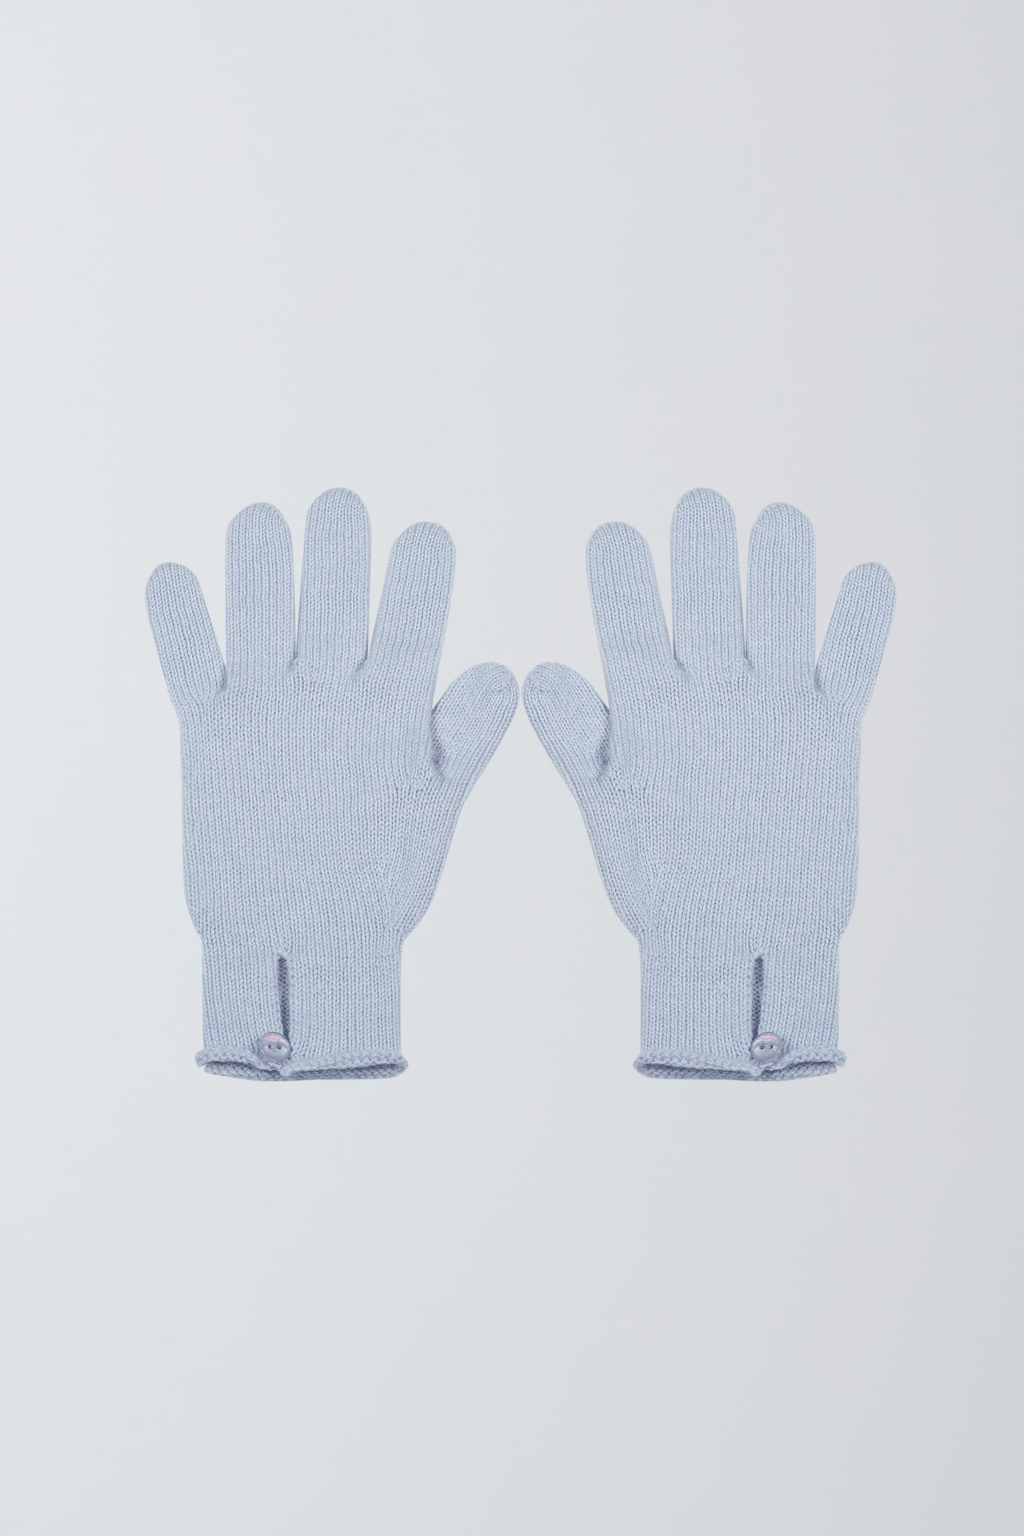 Scottish Cashmere Gloves - Scottish Cashmere Button Gloves - Soft Cashmere Gloves - Light Blue Button Gloves - Scottish Cashmere Light Blue Button Gloves